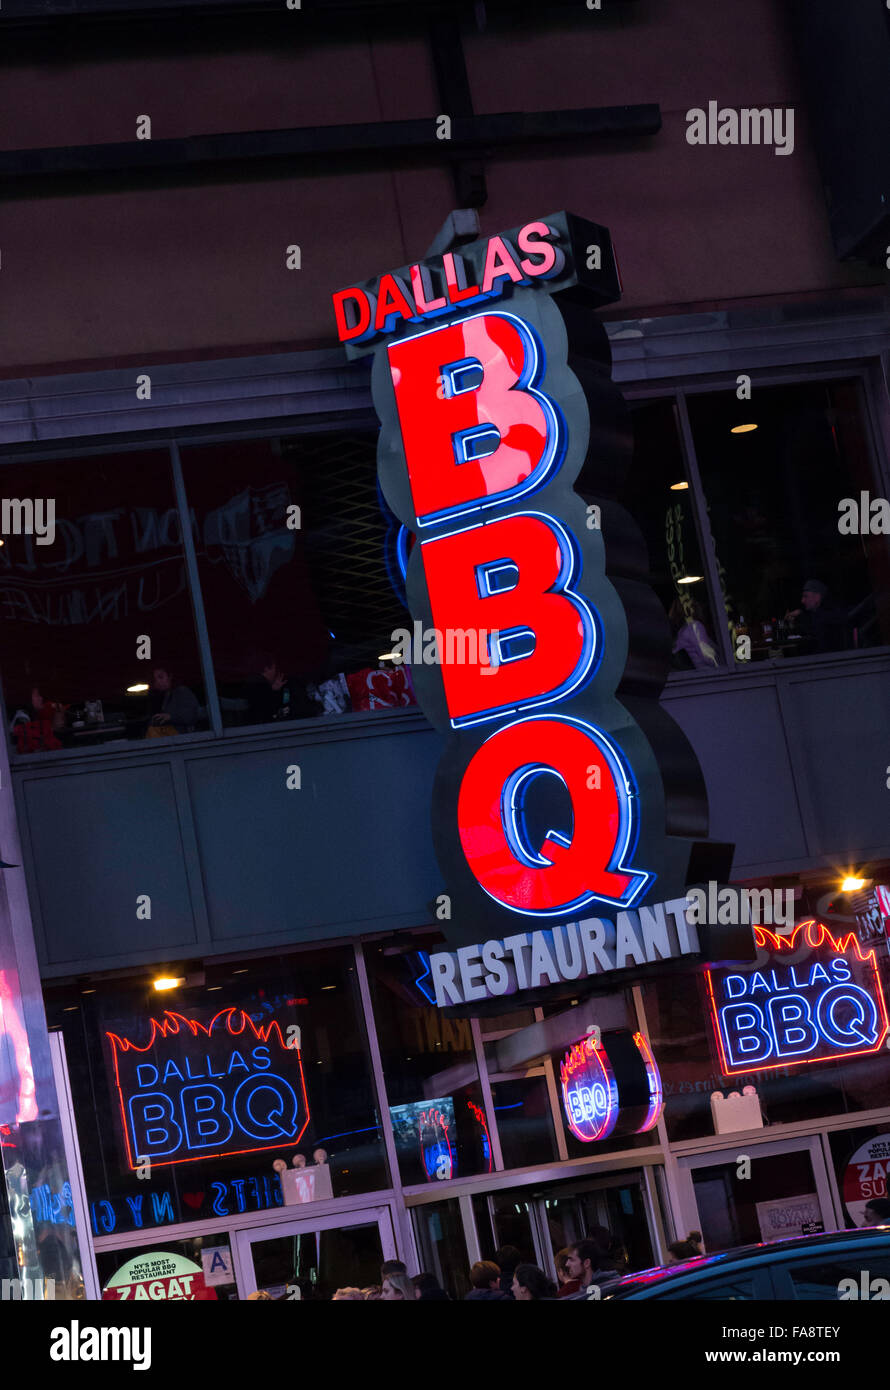 Dallas Bbq Restaurant Lighted Sign Times Square Nyc Stock